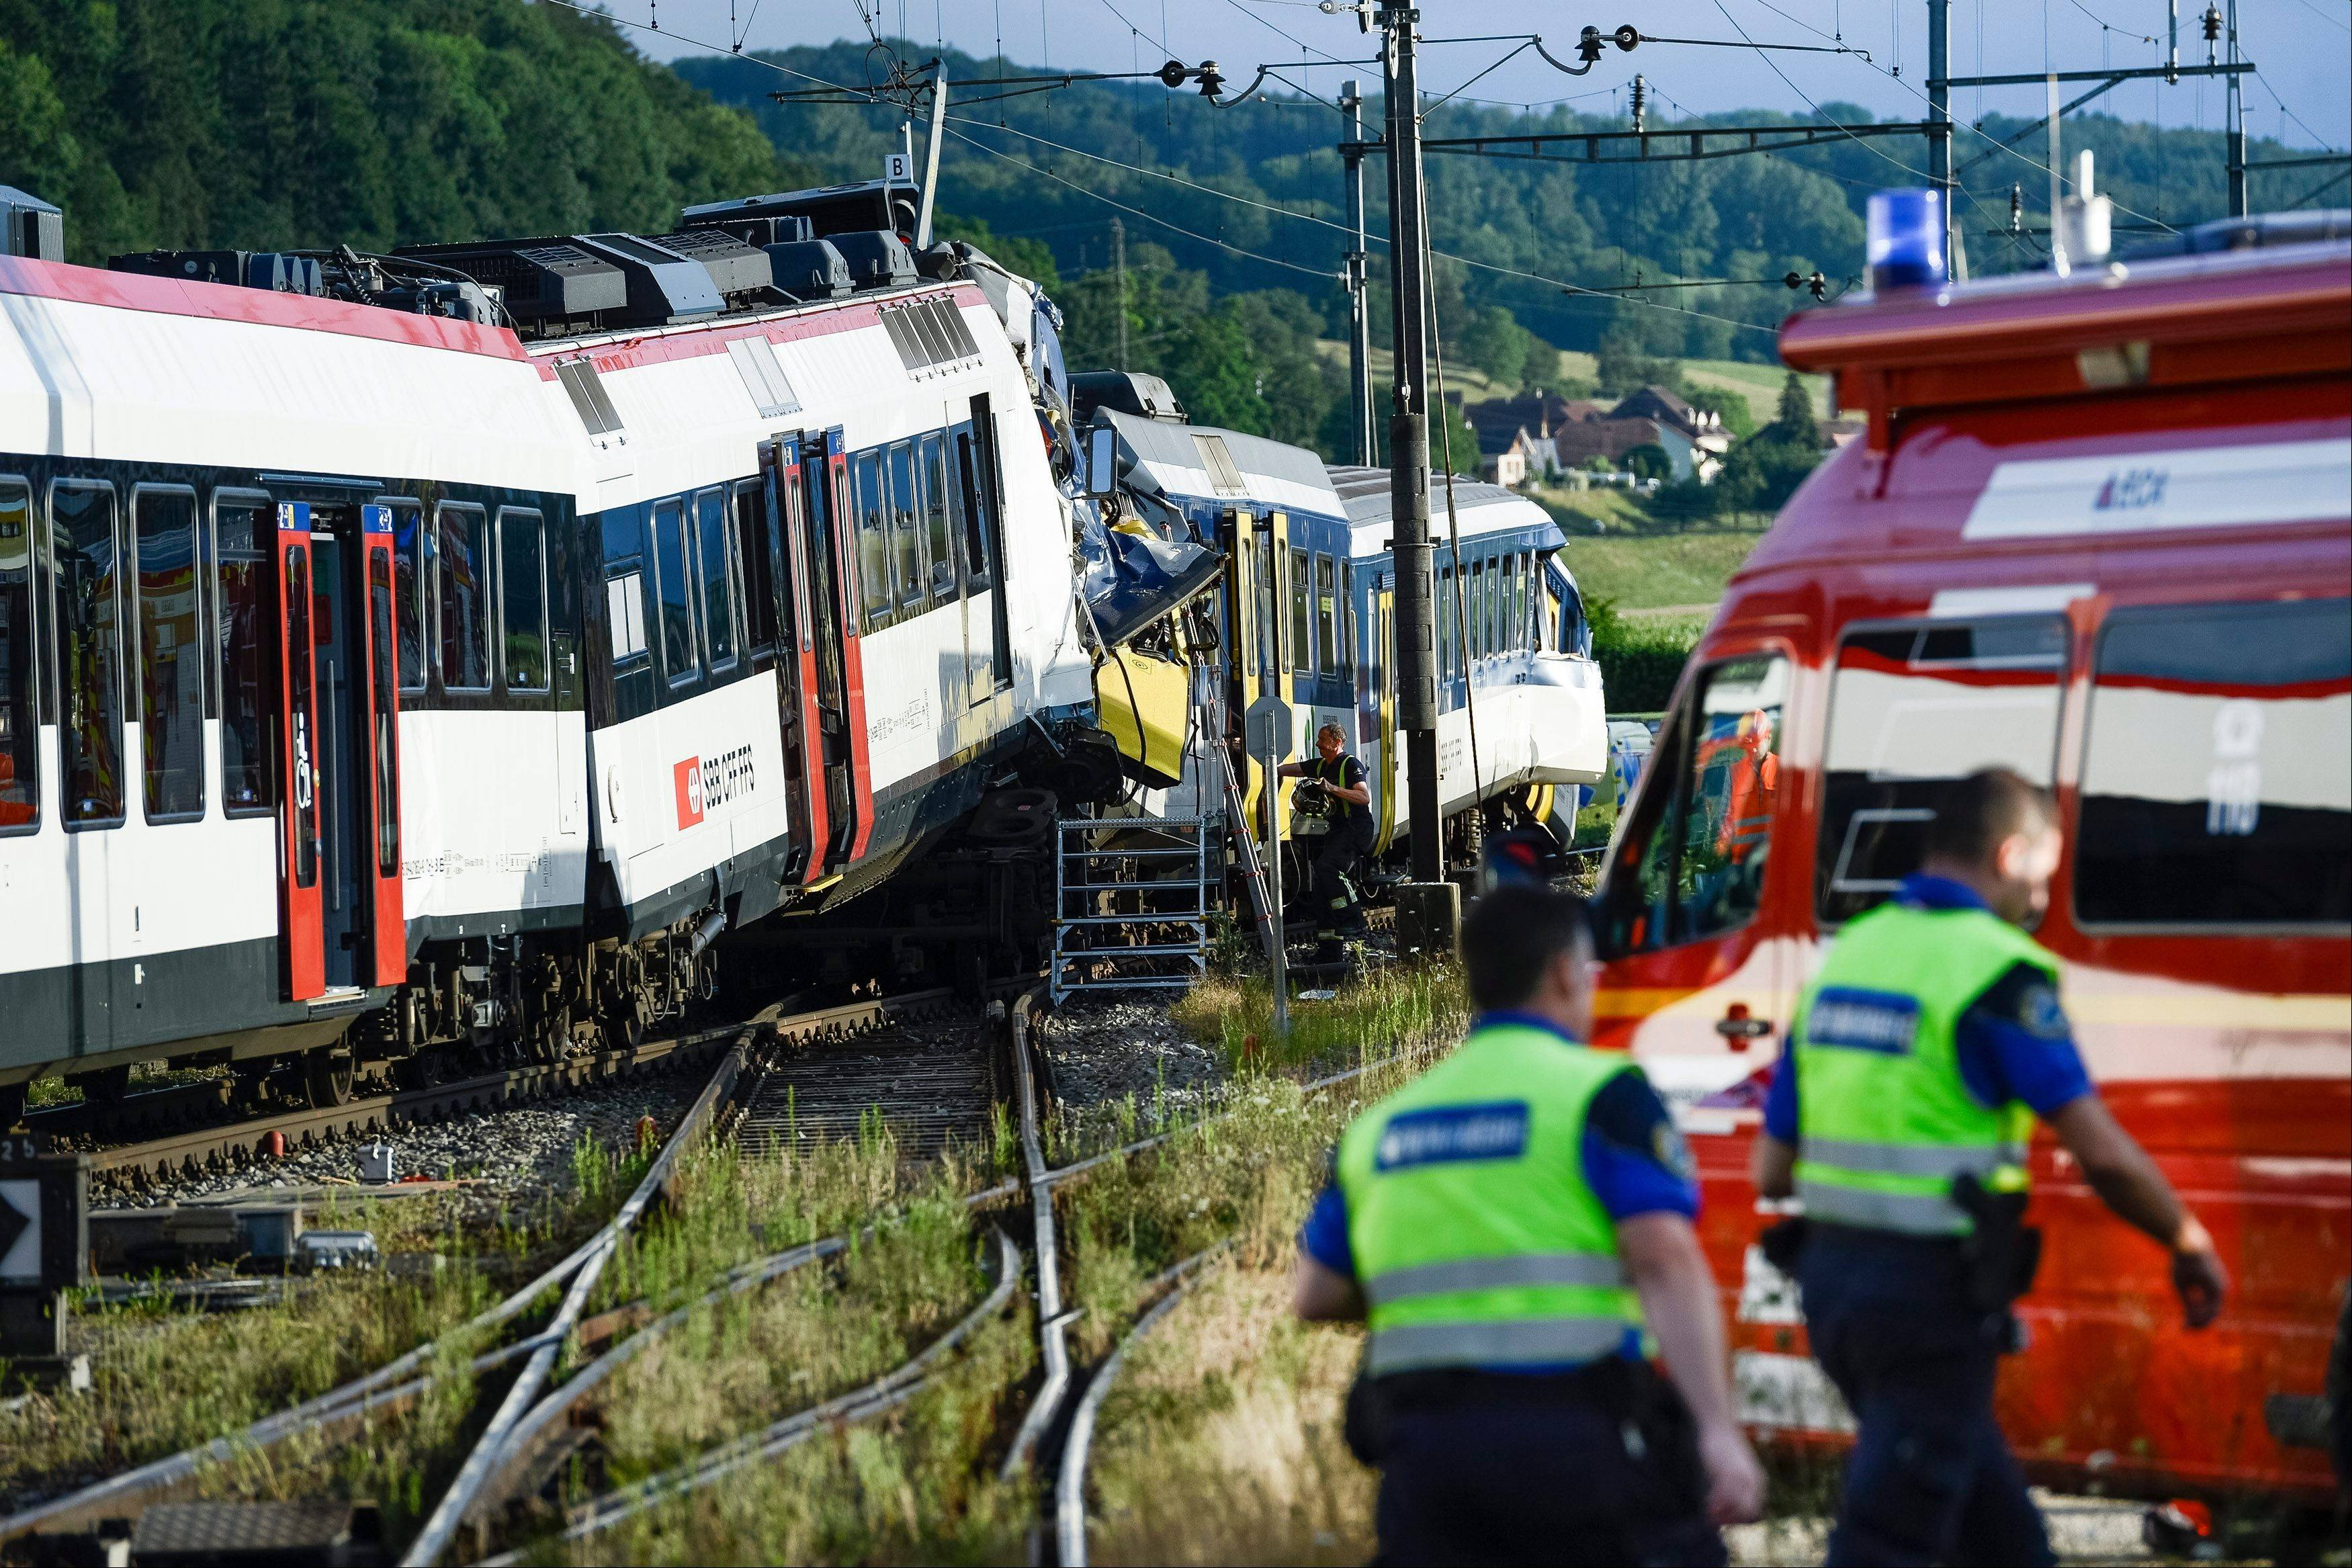 Rescue personnel work at the site where two passenger trains collided head-on in Granges-pres-Marnand, western Switzerland, Monday, July 29, 2013. Numerous people have been injured.